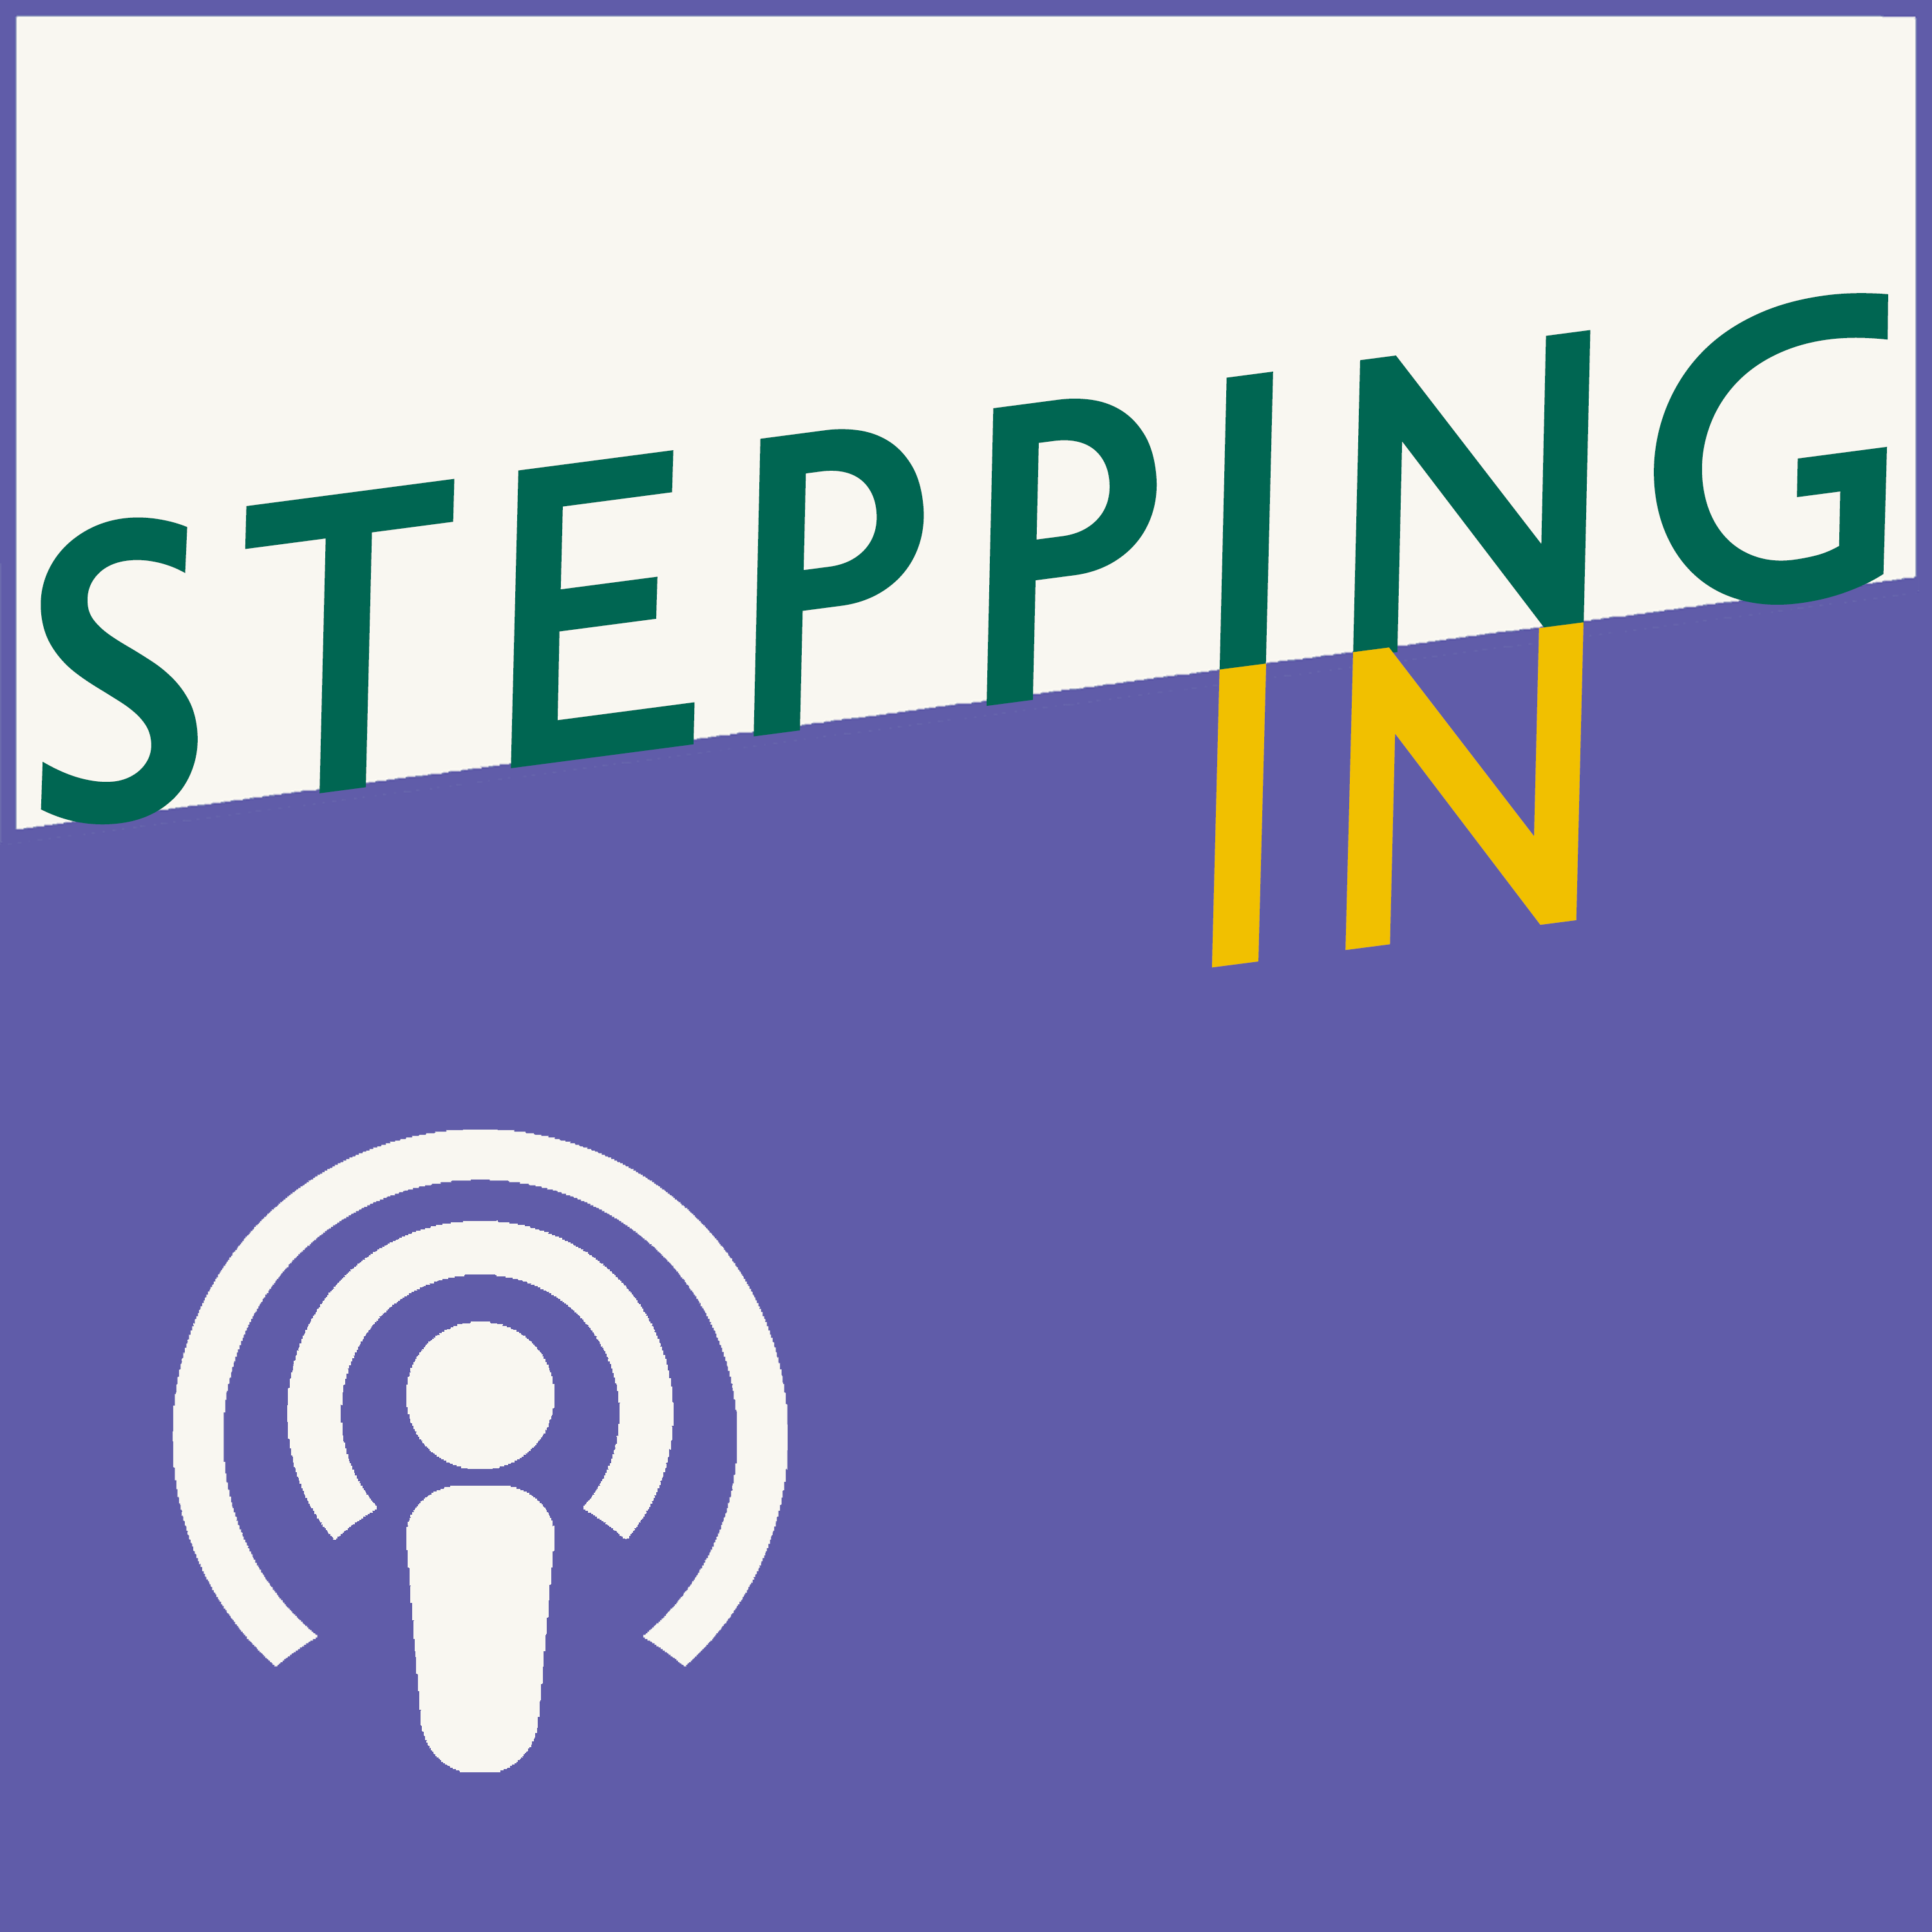 Stepping In : New Ventures West Podcast